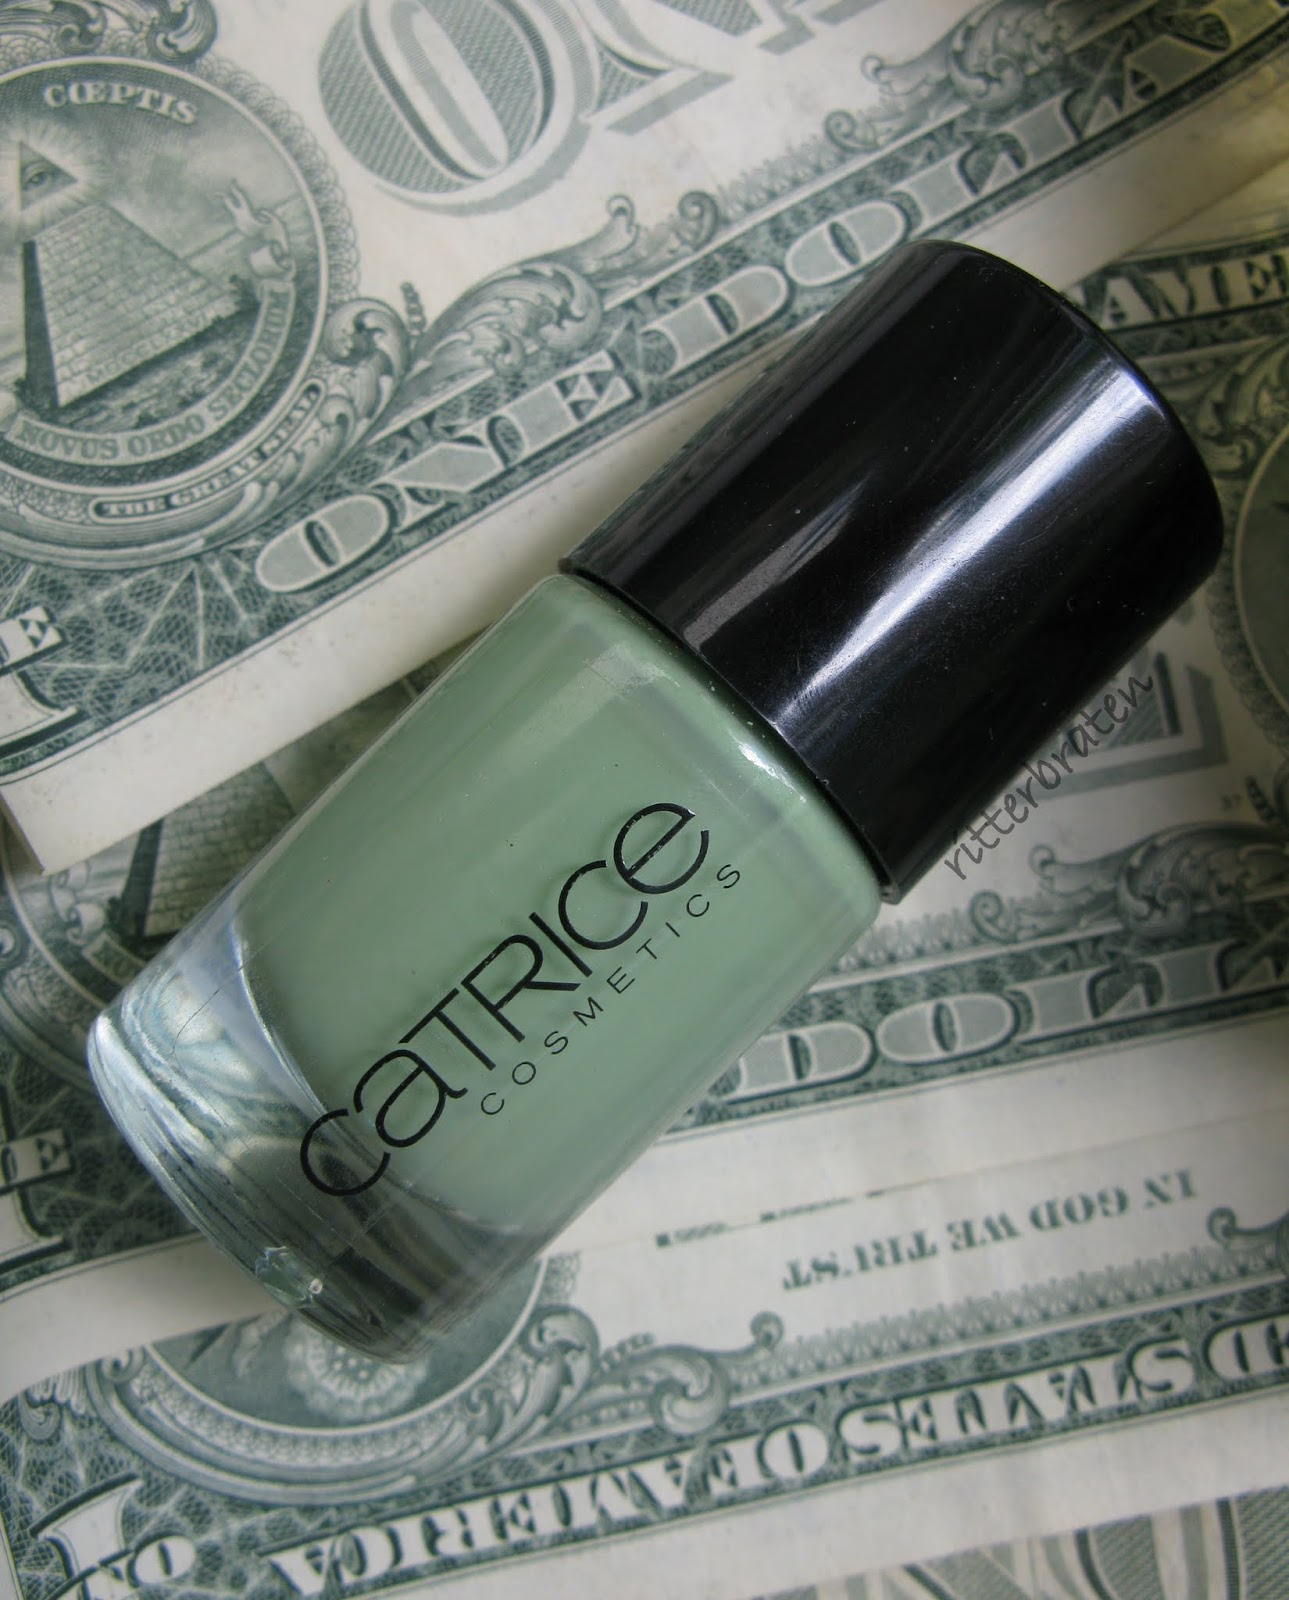 Catrice Sold Out Forever swatch nail polish